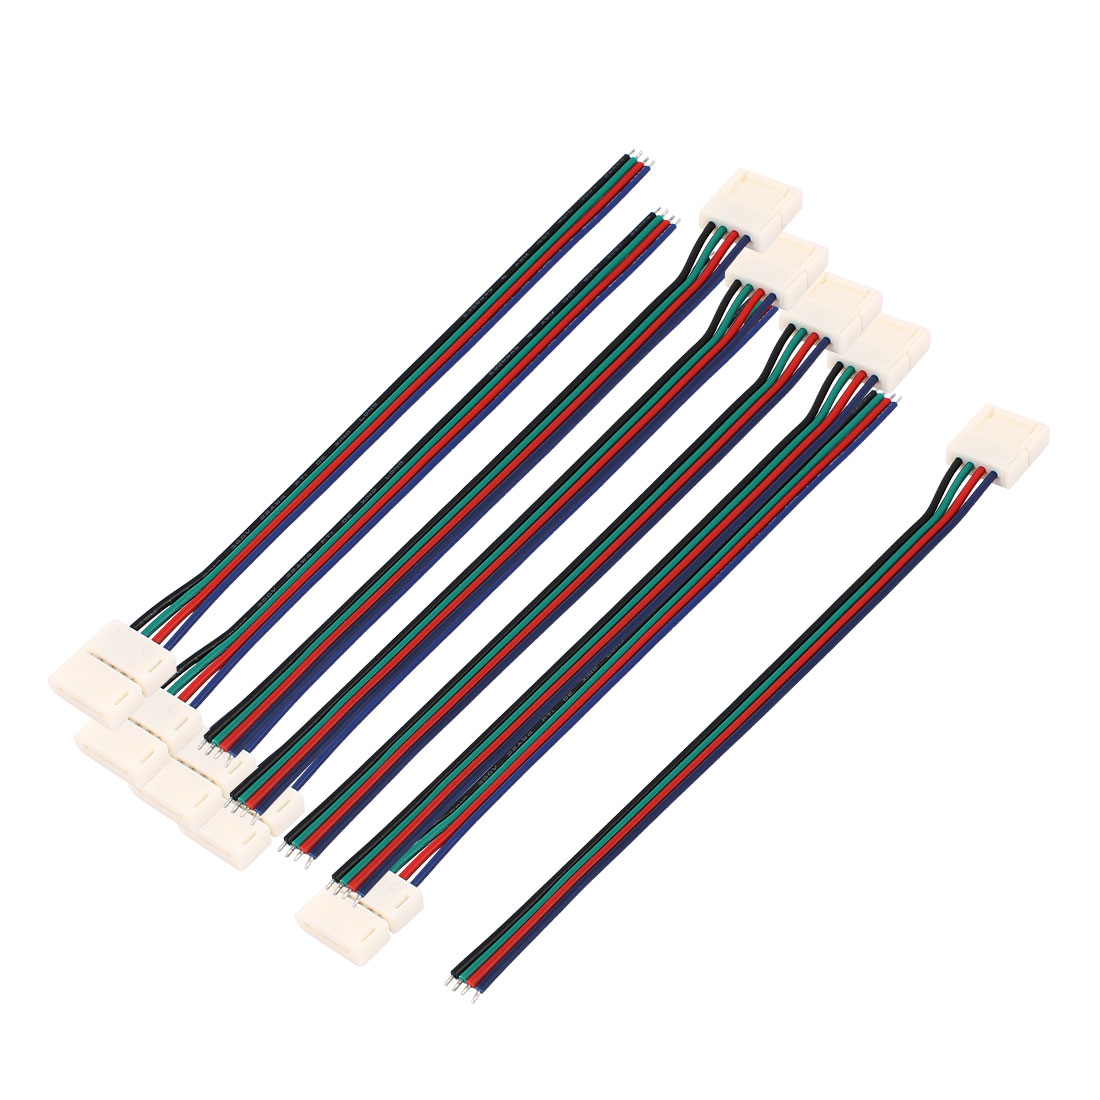 10Pcs 15cm Long 10mm Width 4 Pin Wire Connector for Led 5050 RGB Light Strip